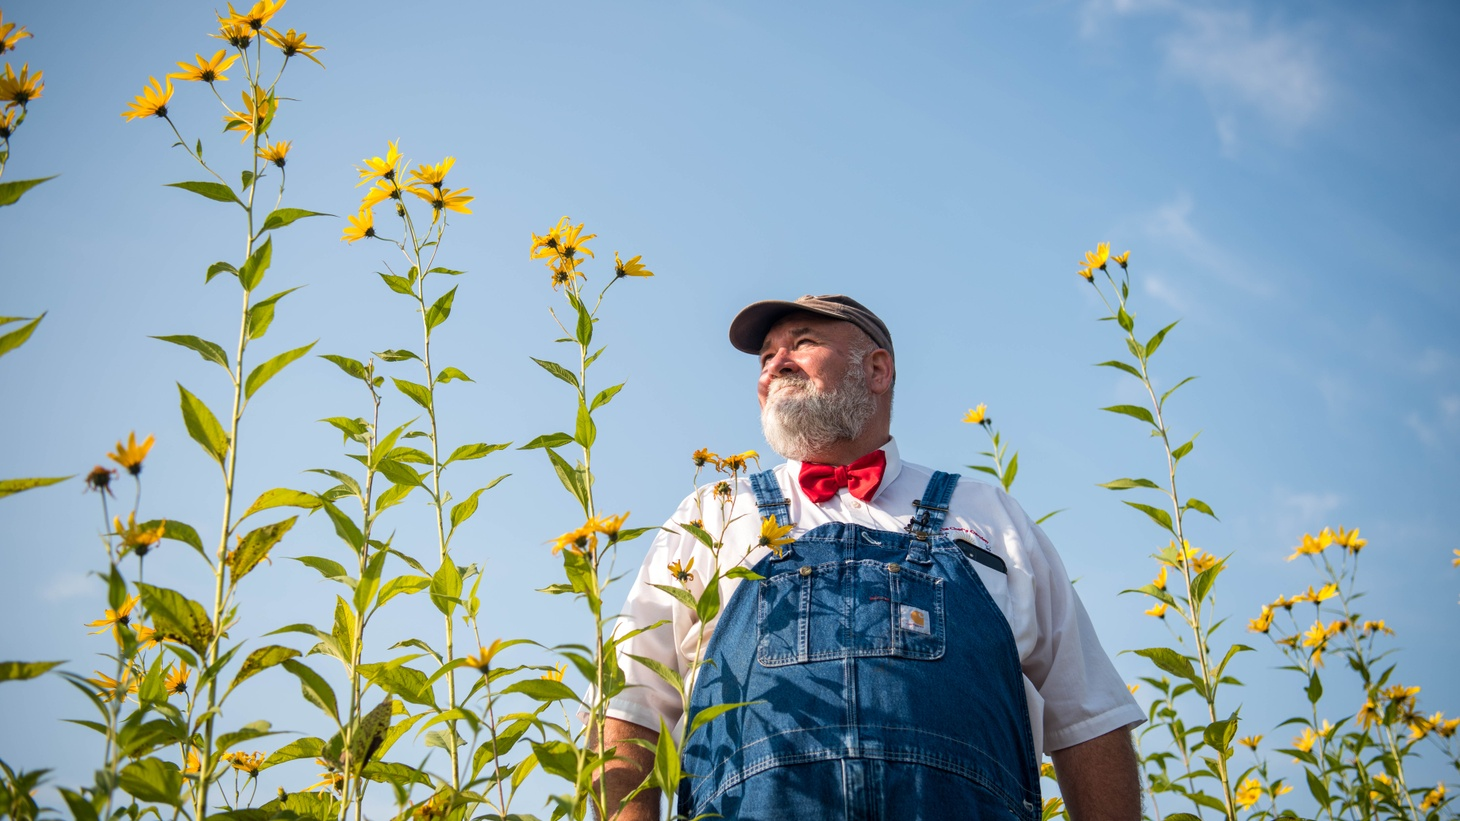 Lee Jones is a sixth generation farmer, growing vegetables just off of Lake Erie that are popular among the world's most discernible chefs.